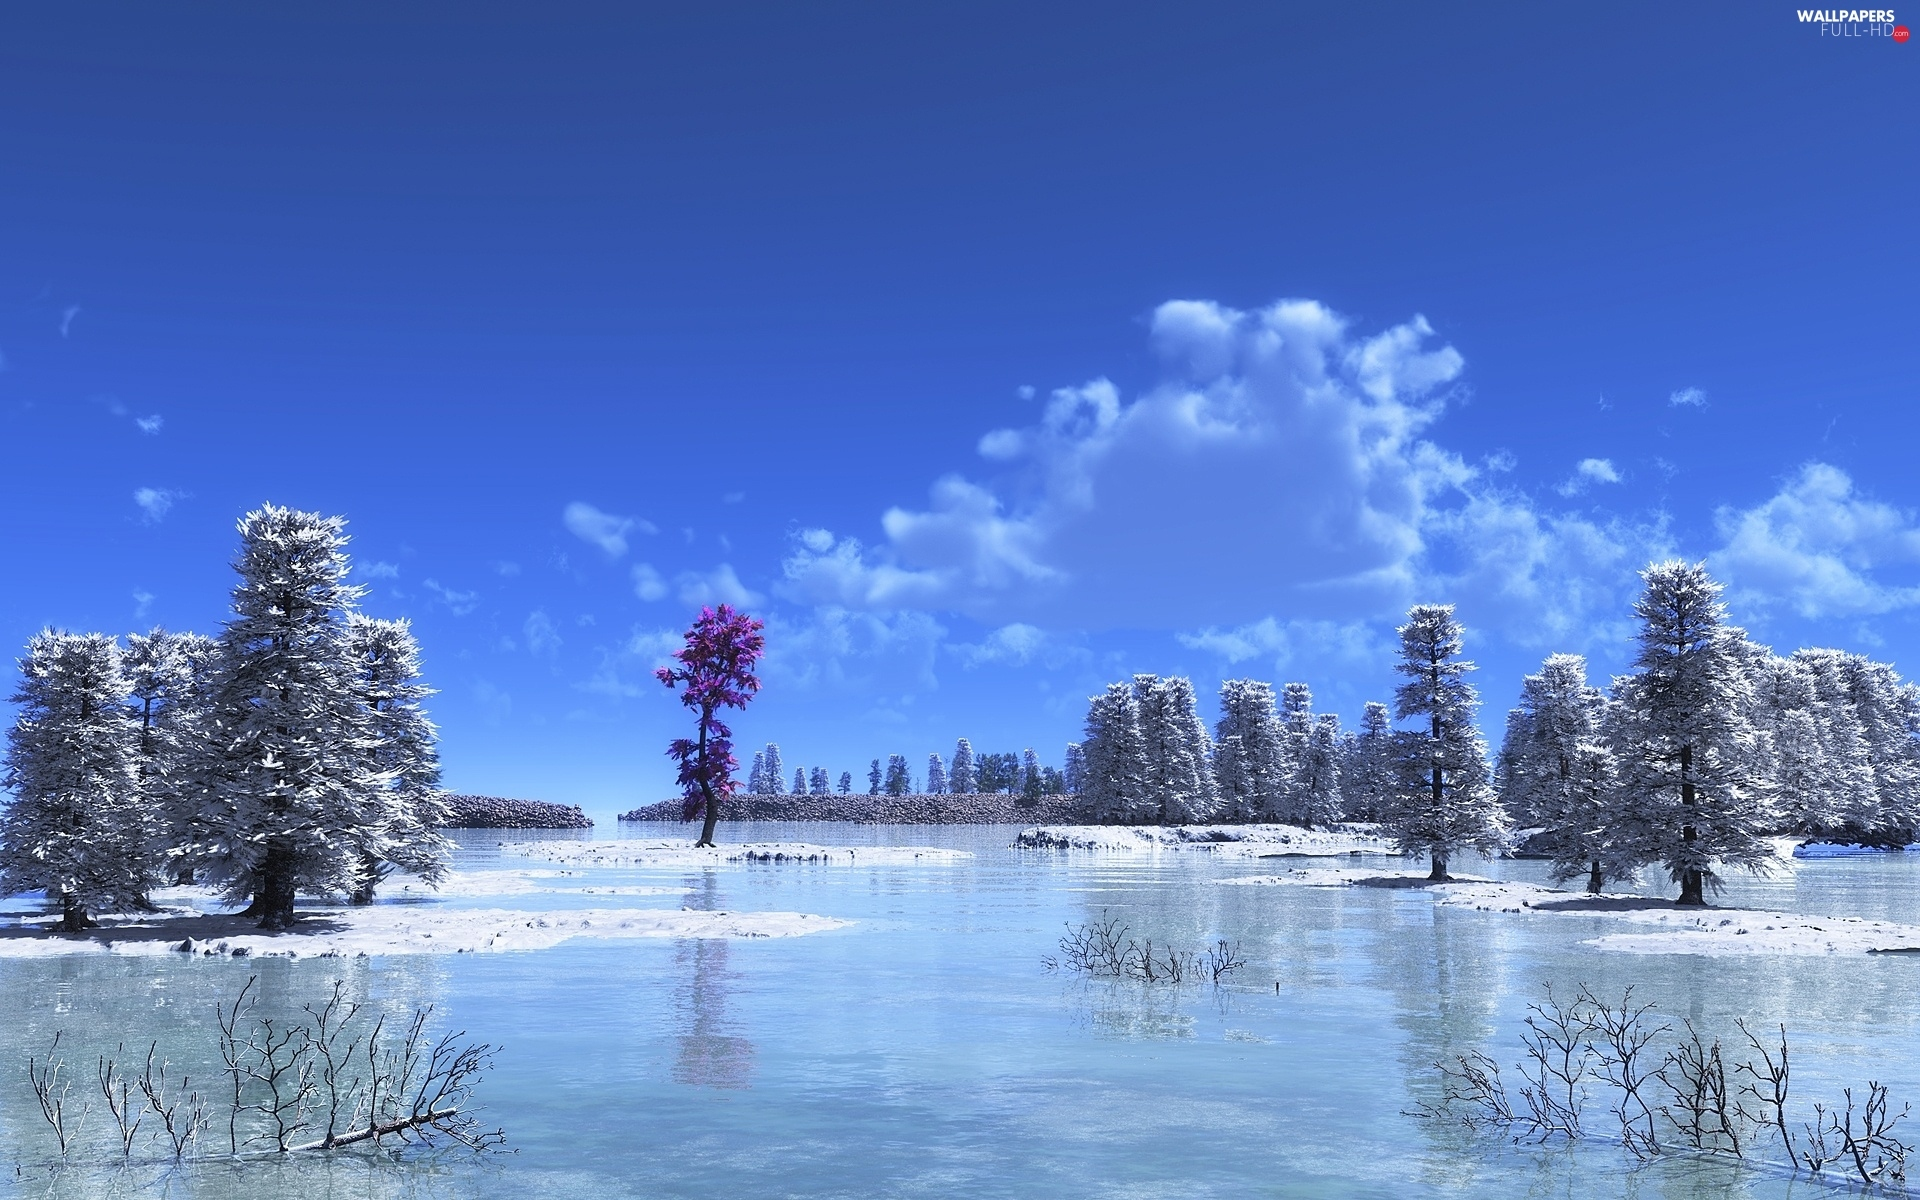 rime, viewes, lake, trees